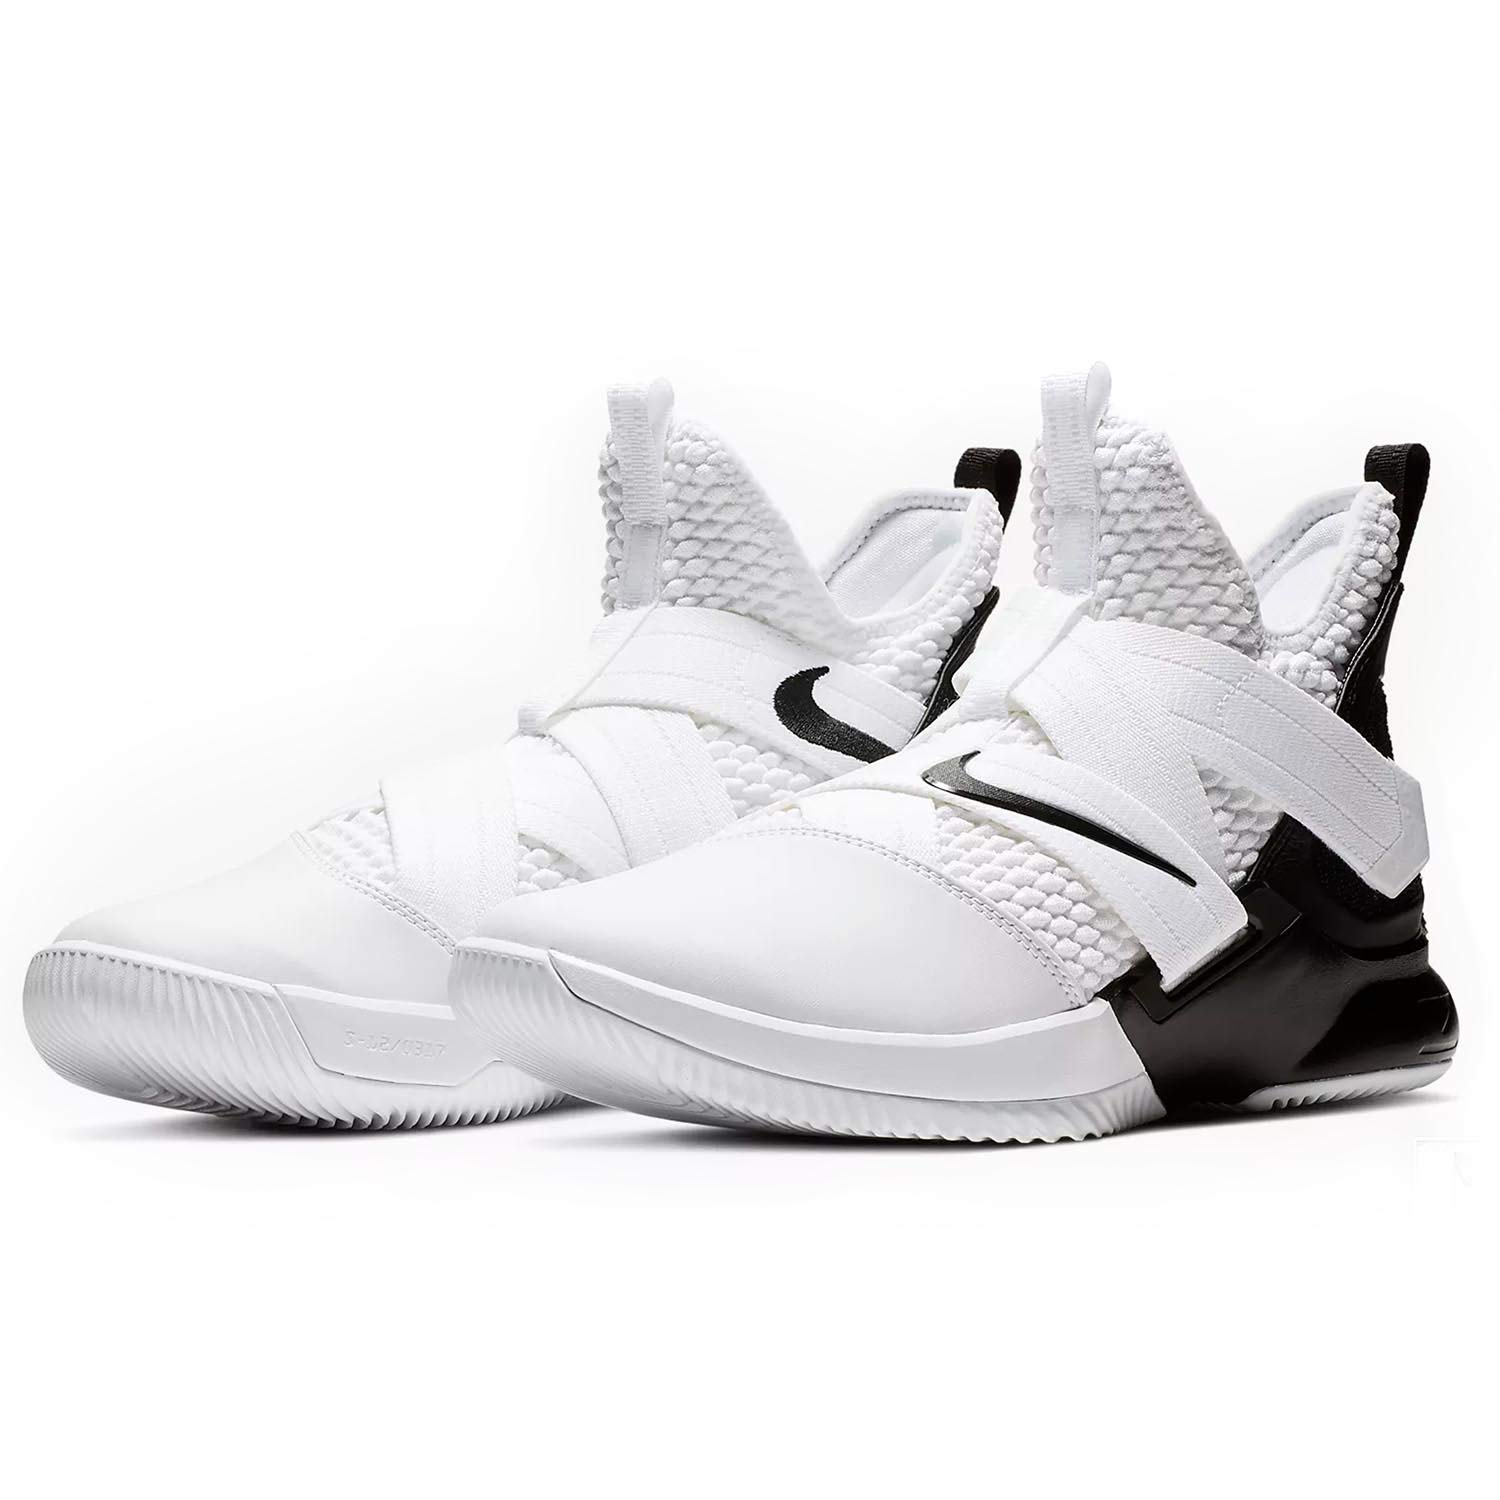 check out 73558 05675 Amazon.com   NIKE Men s Lebron Soldier XII Basketball Shoe   Shoes